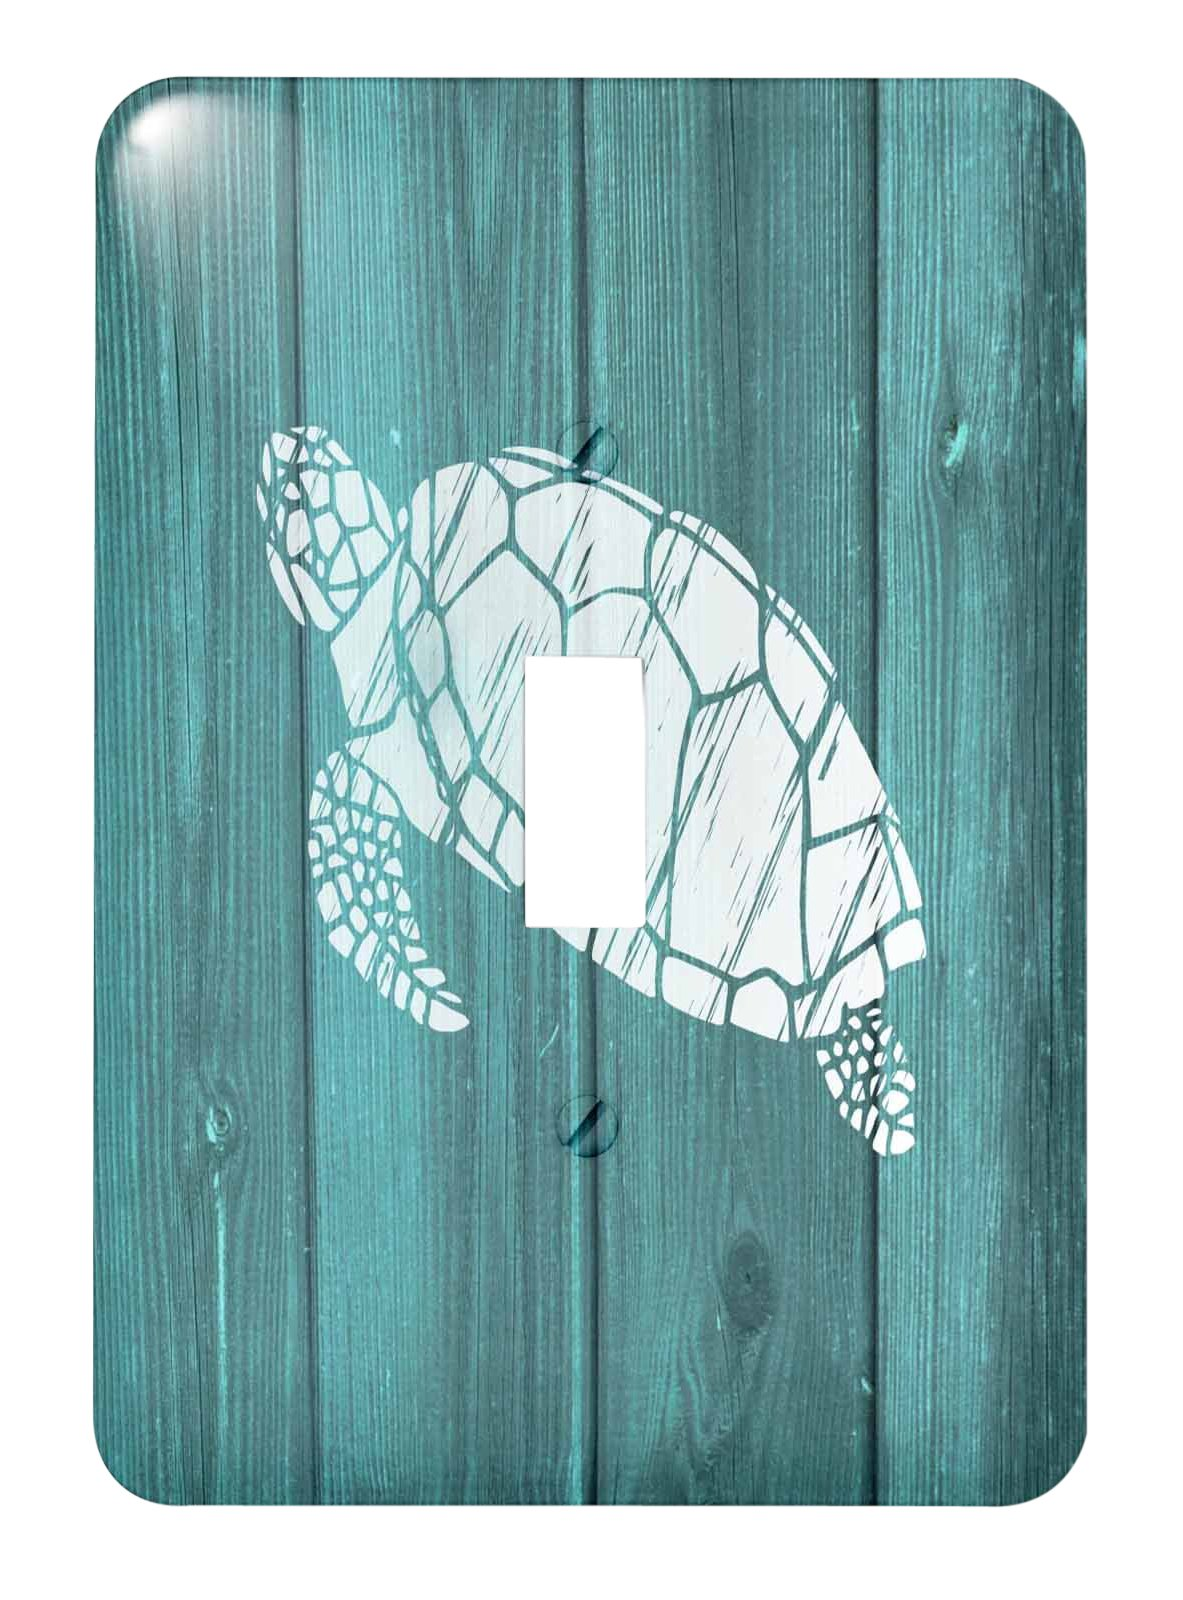 3dRose lsp_220428_1 Turtle Stencil In White Over Teal Weatherboard- Not Real Wood - Single Toggle Switch